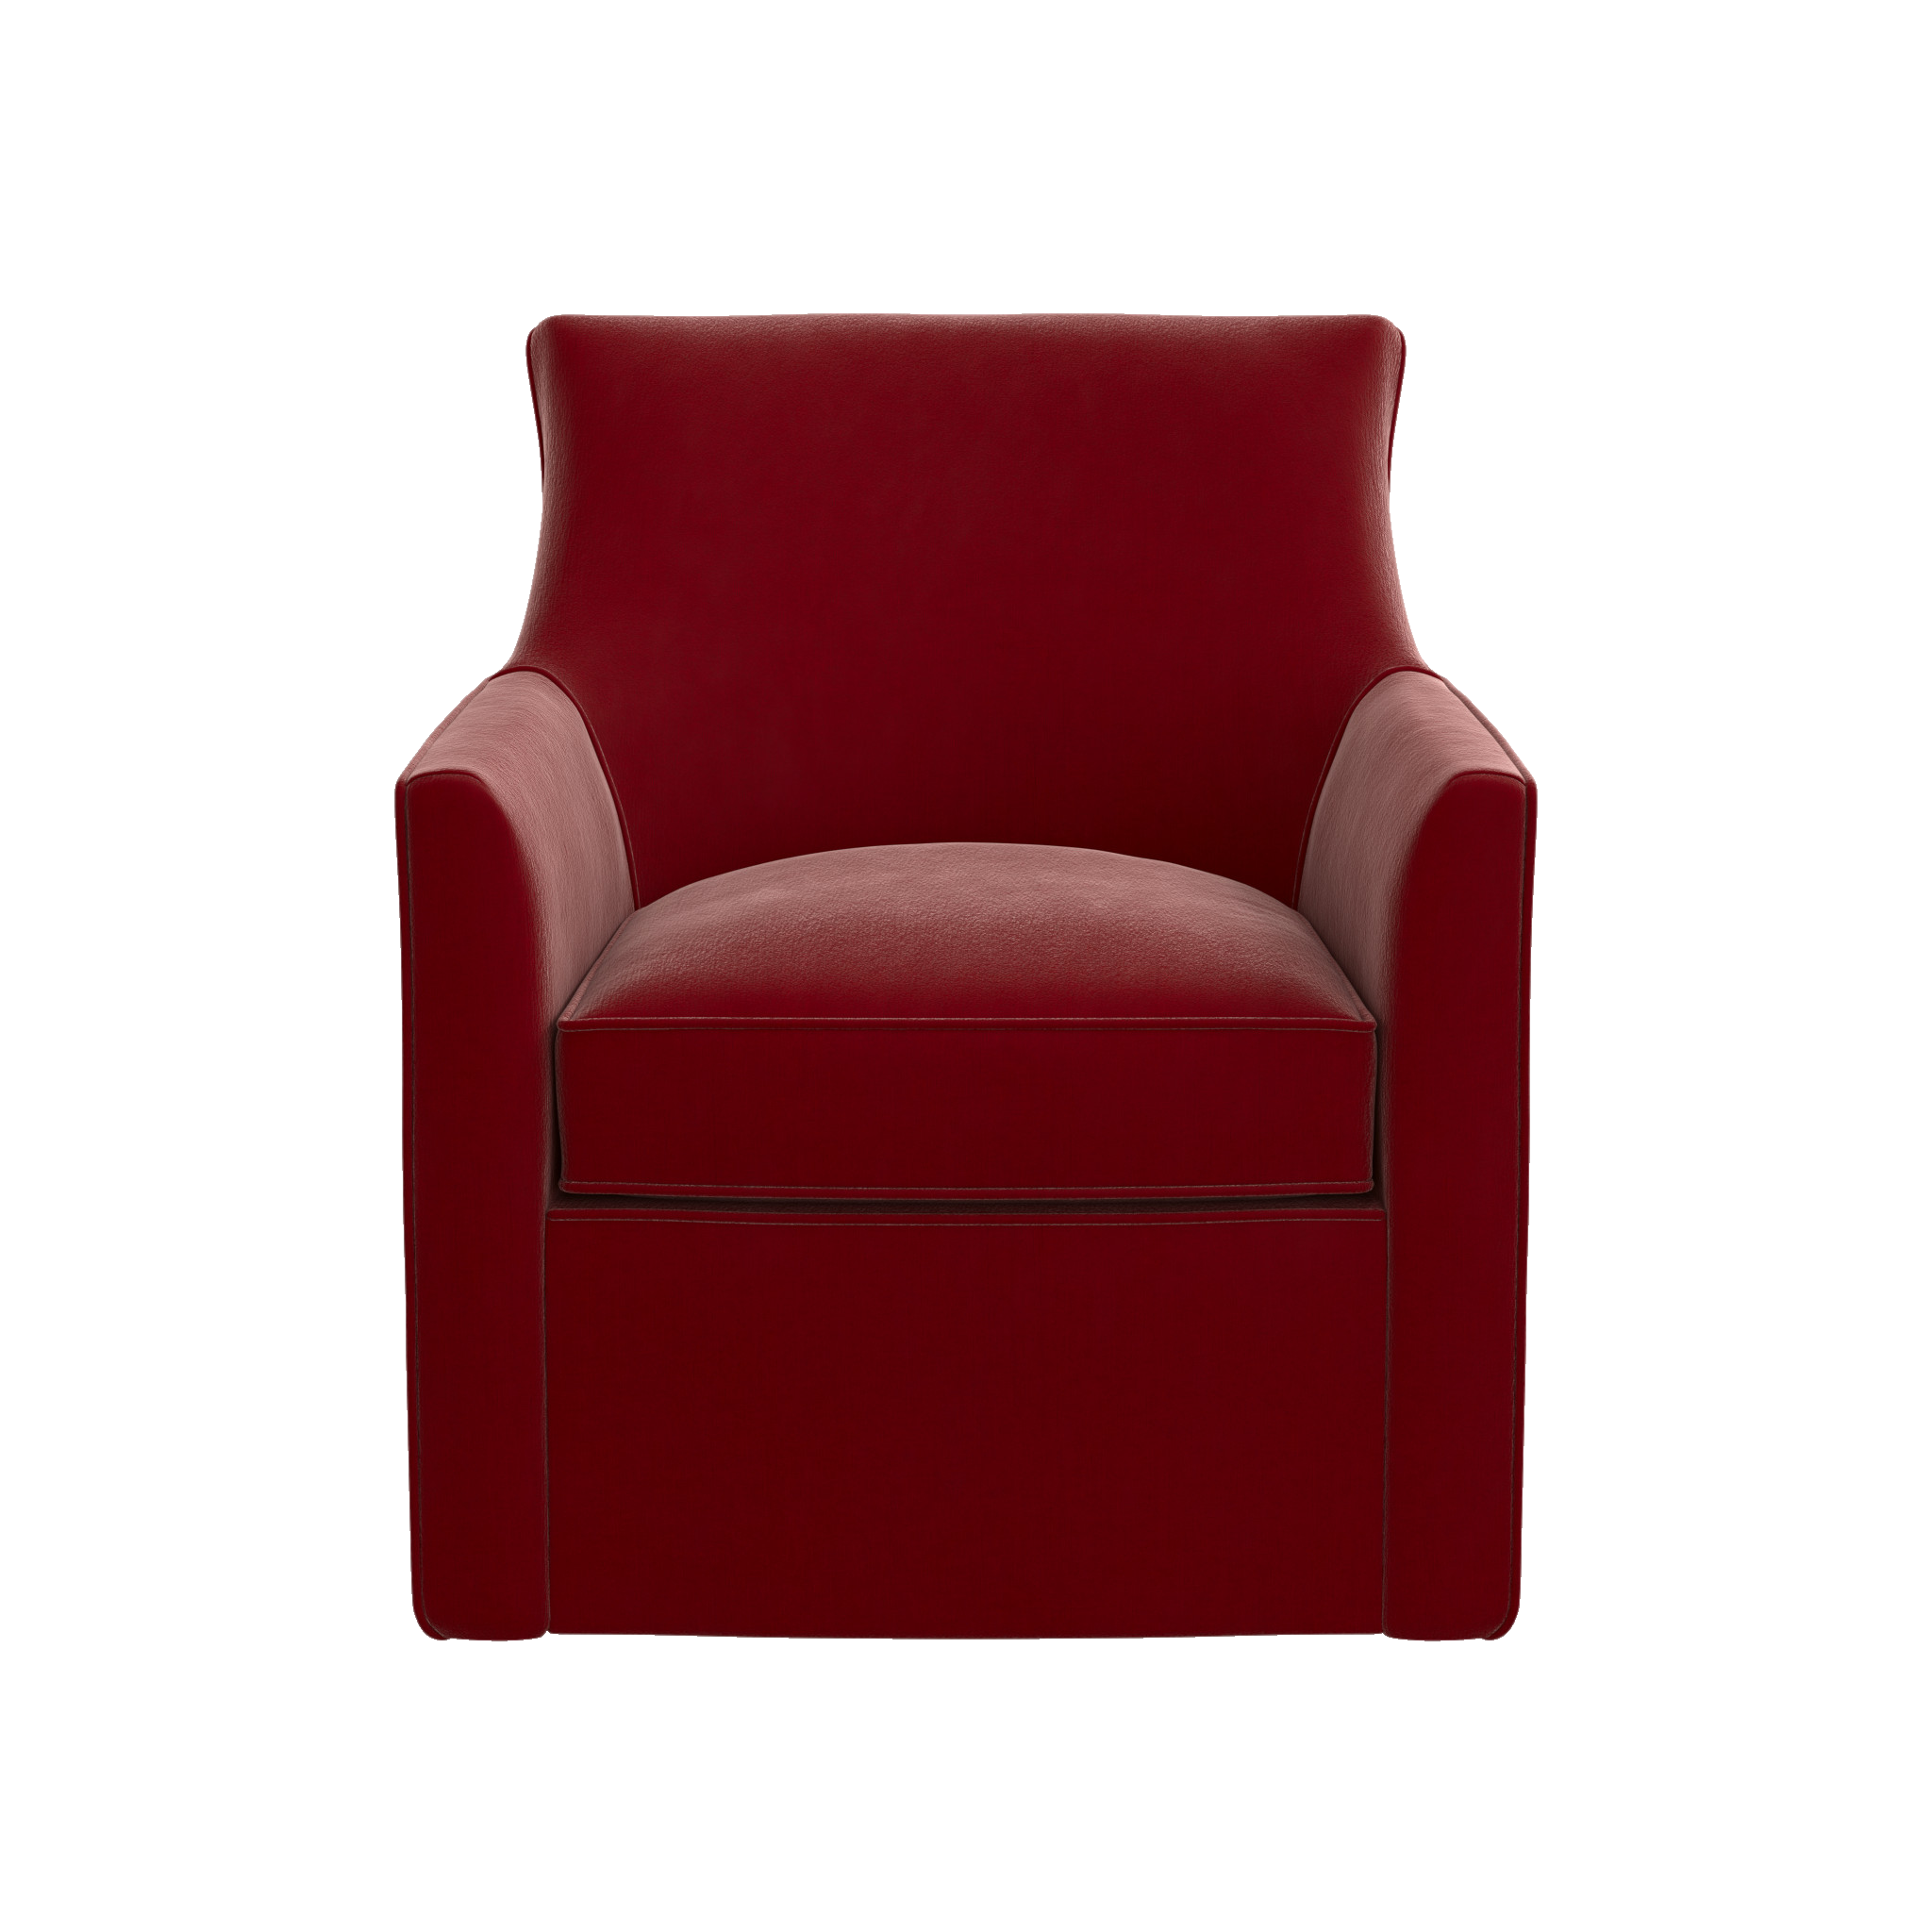 Clara Swivel Chair Crate and Barrel